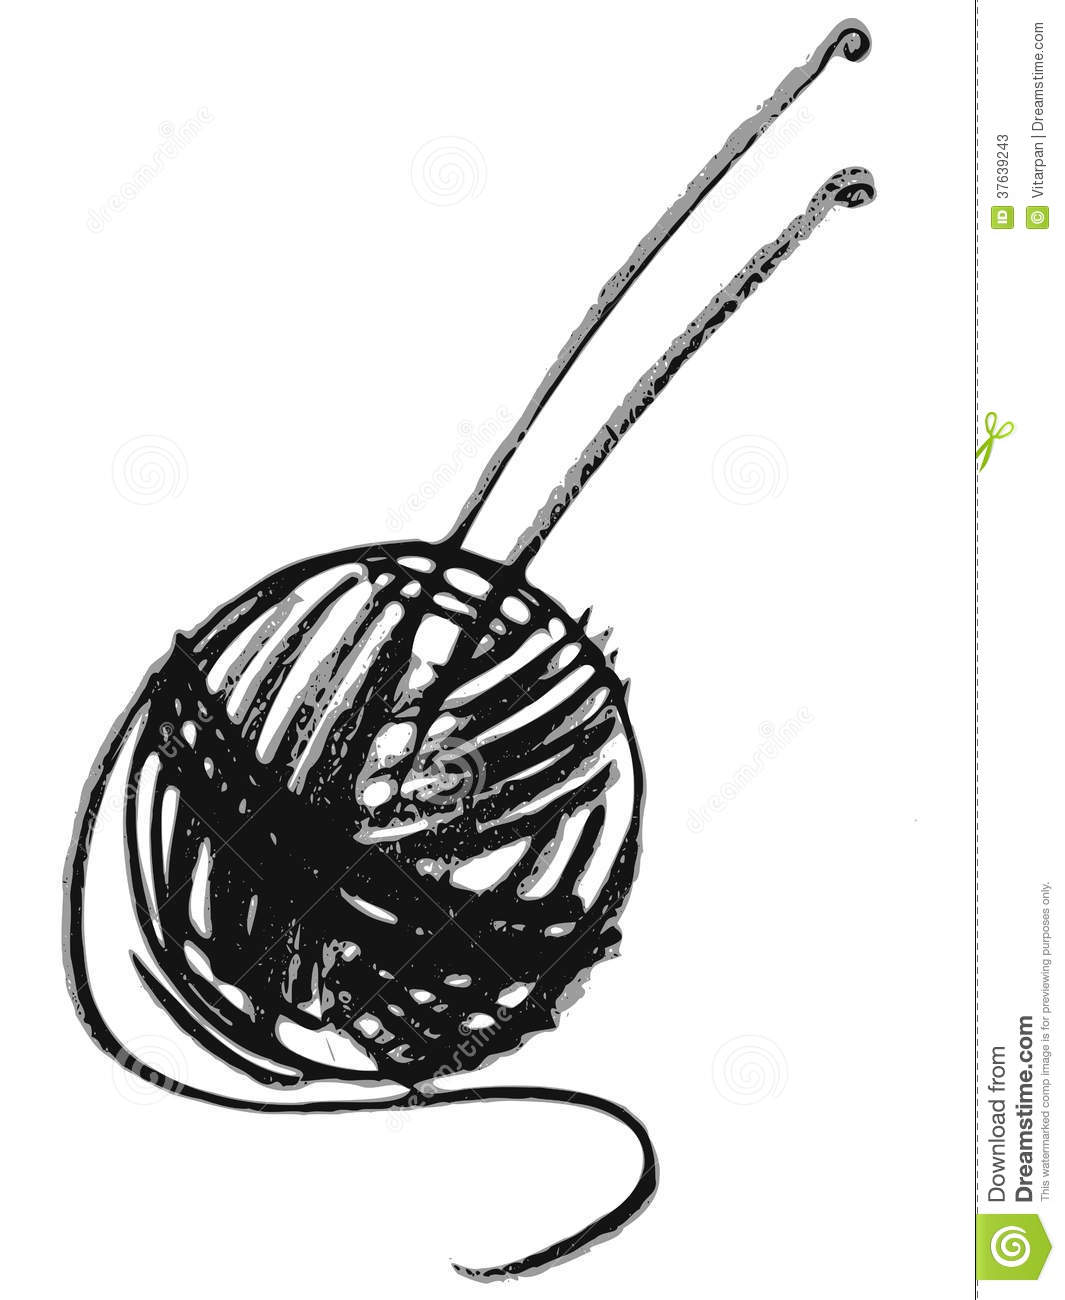 Cartoon Knitting Needles : Ball of yarn and knitting needles stock photos image